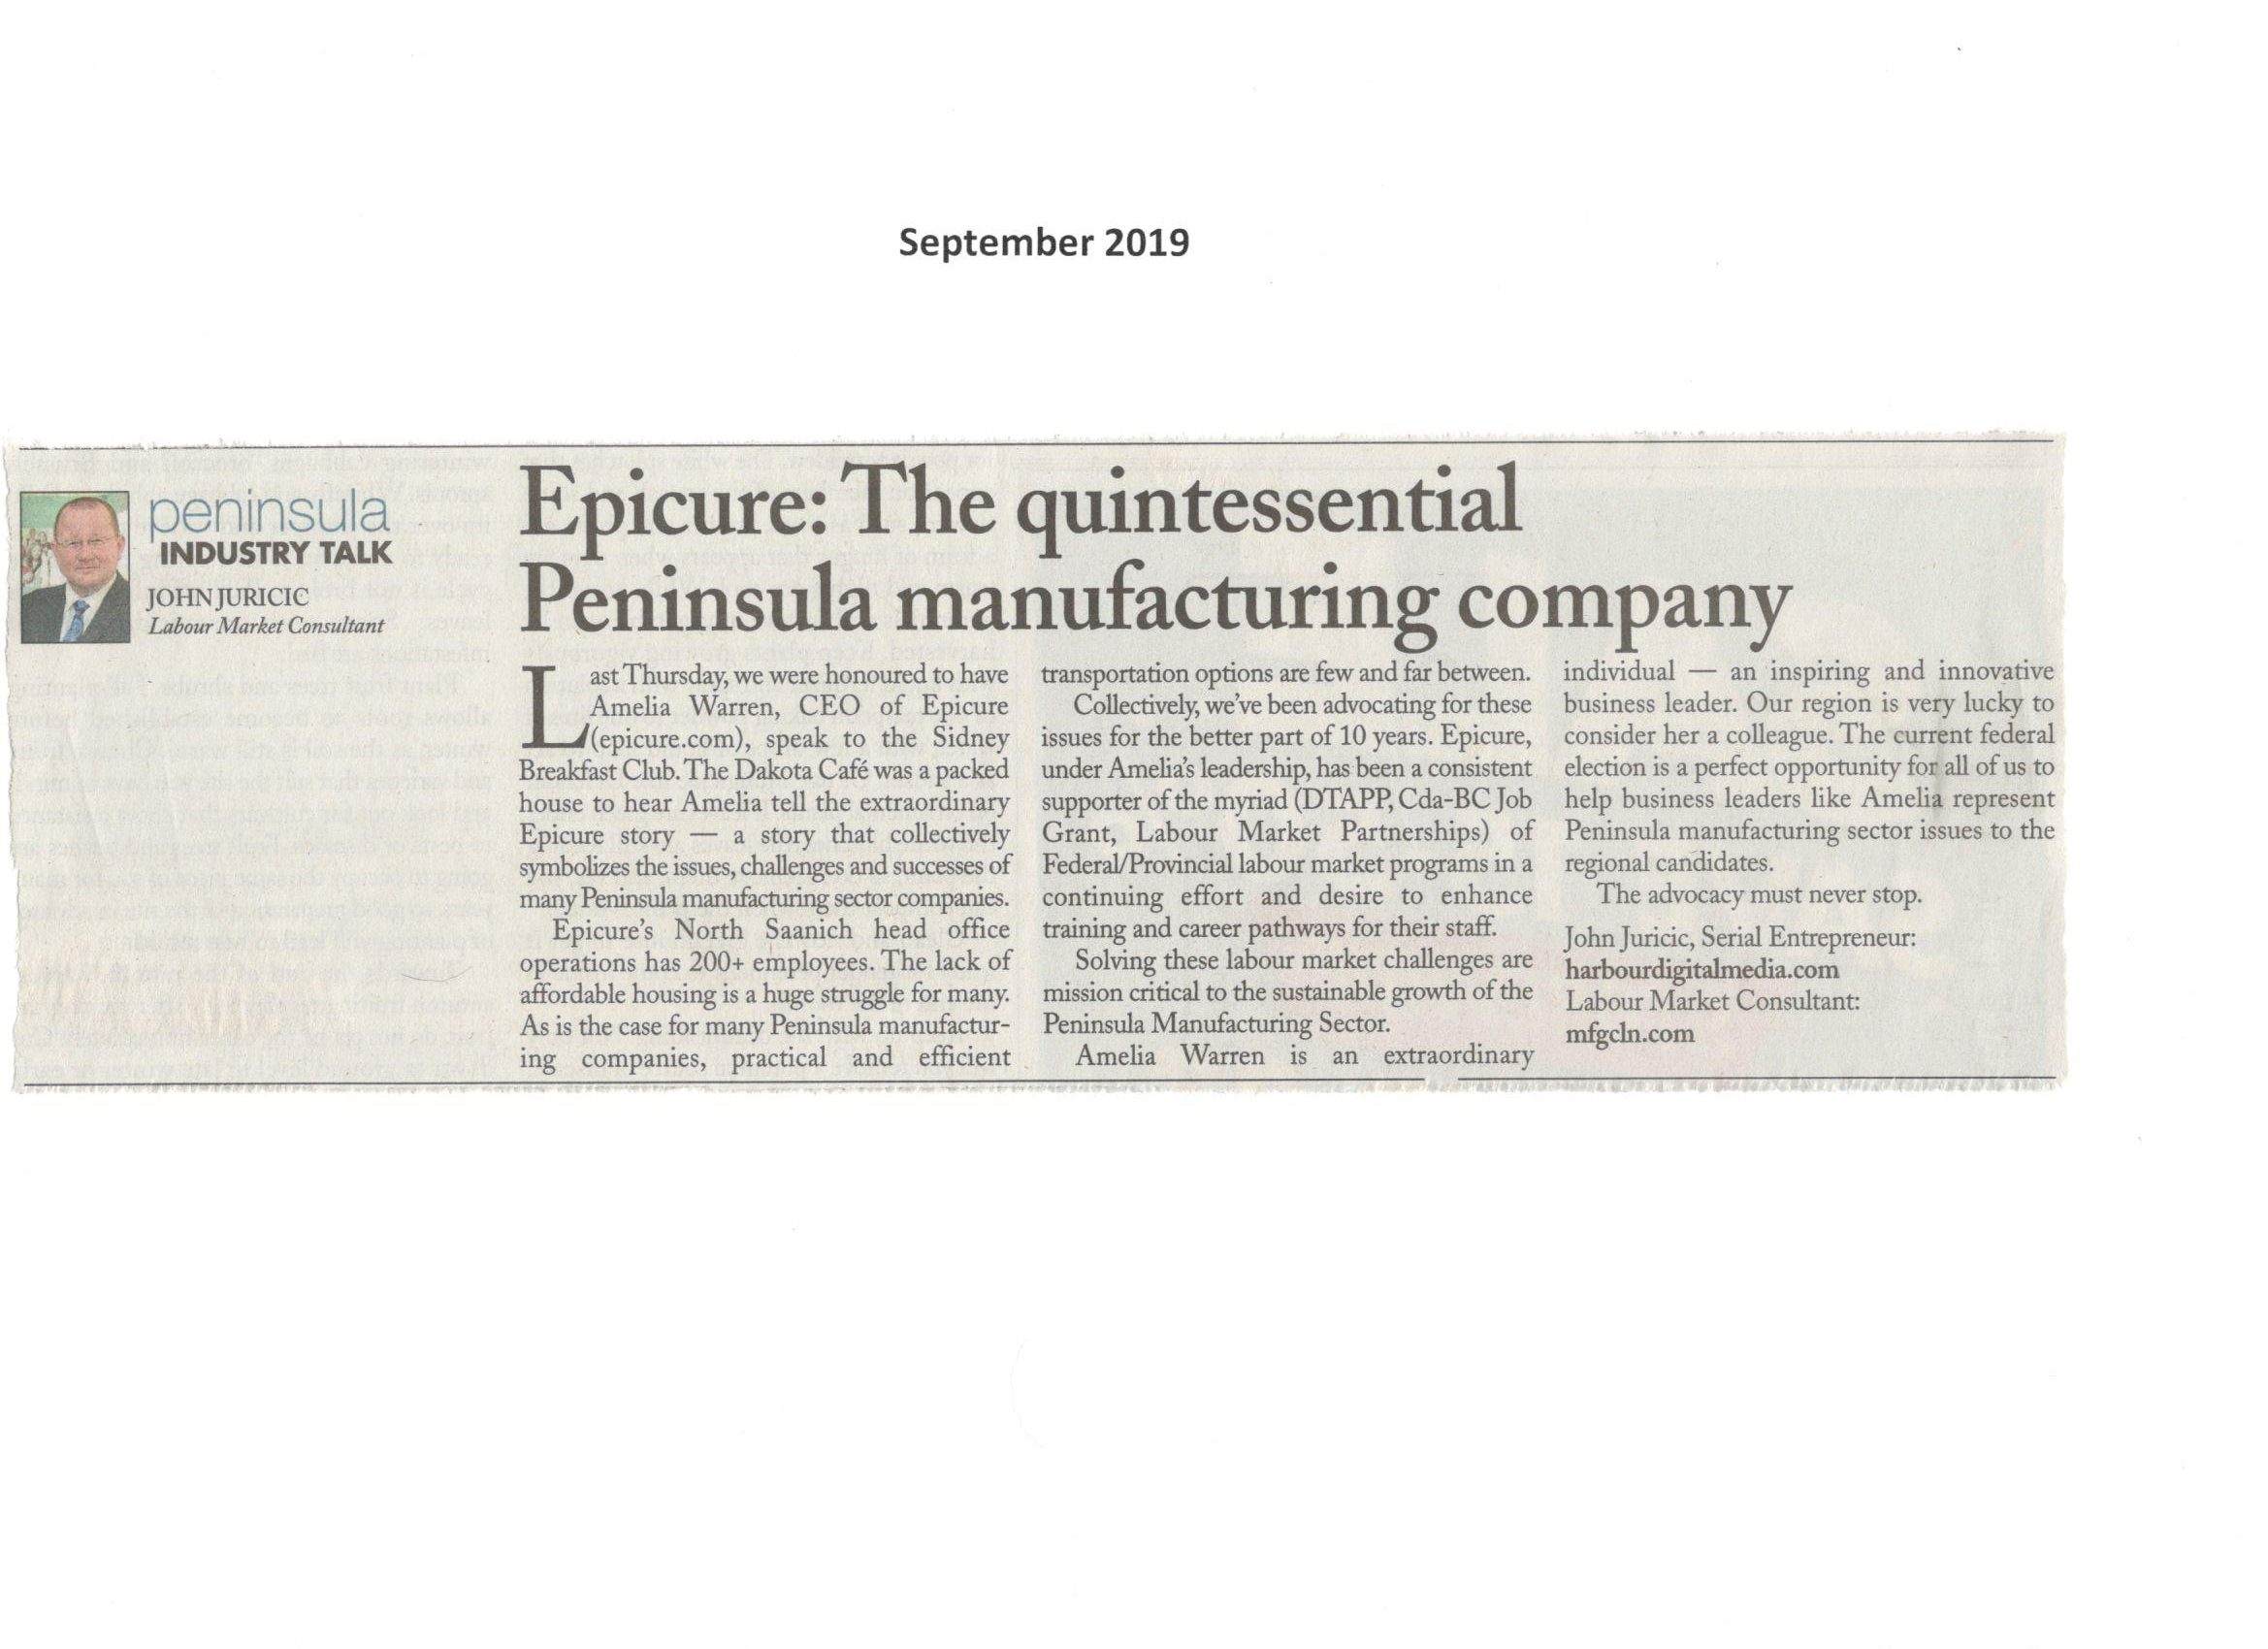 Epicure - The quintessential Peninsula manufacturing company